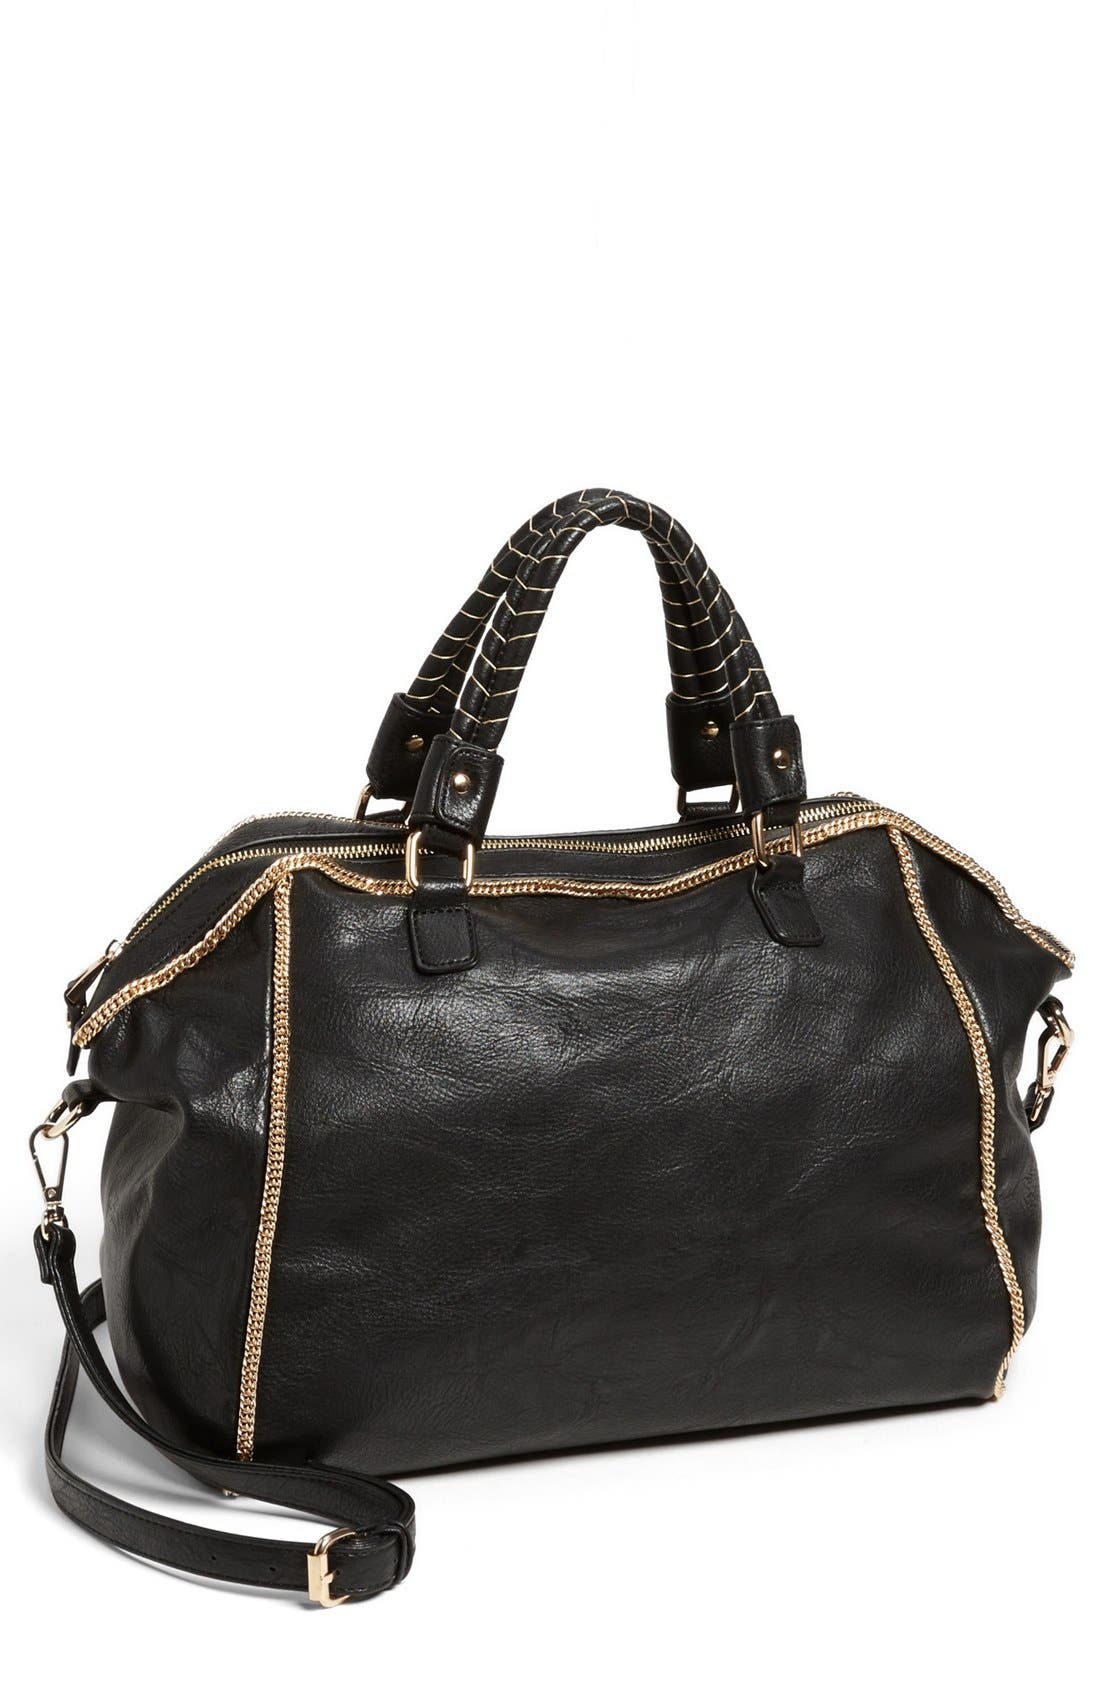 'Janae' Faux Leather Satchel,                             Main thumbnail 1, color,                             001